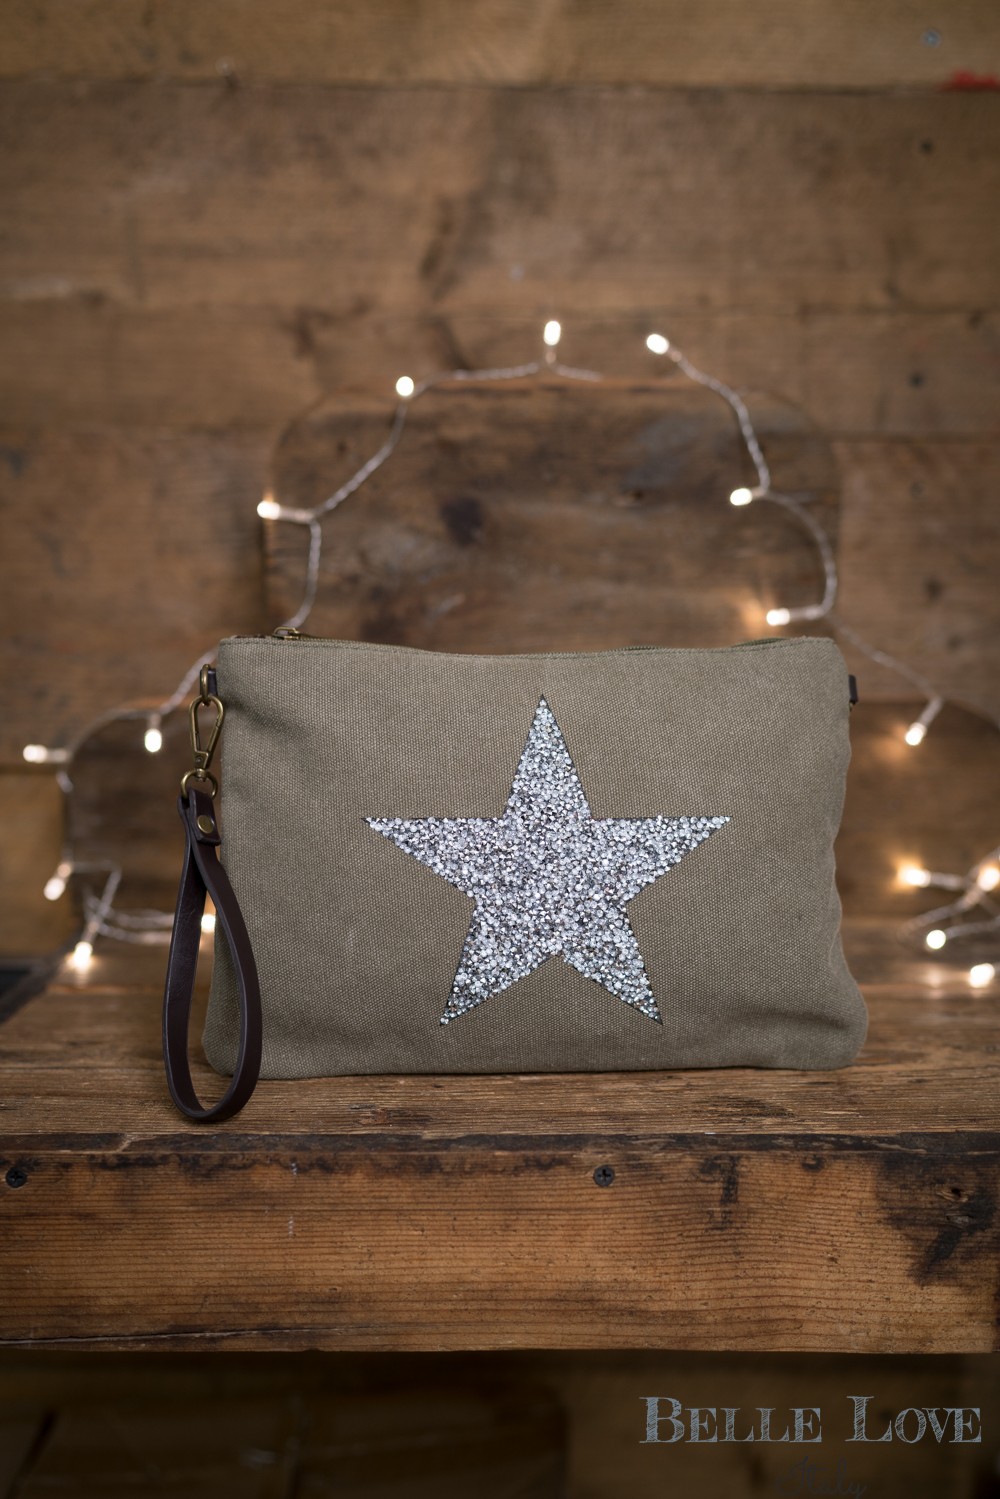 Belle Love Italy Glitzy Star Bag